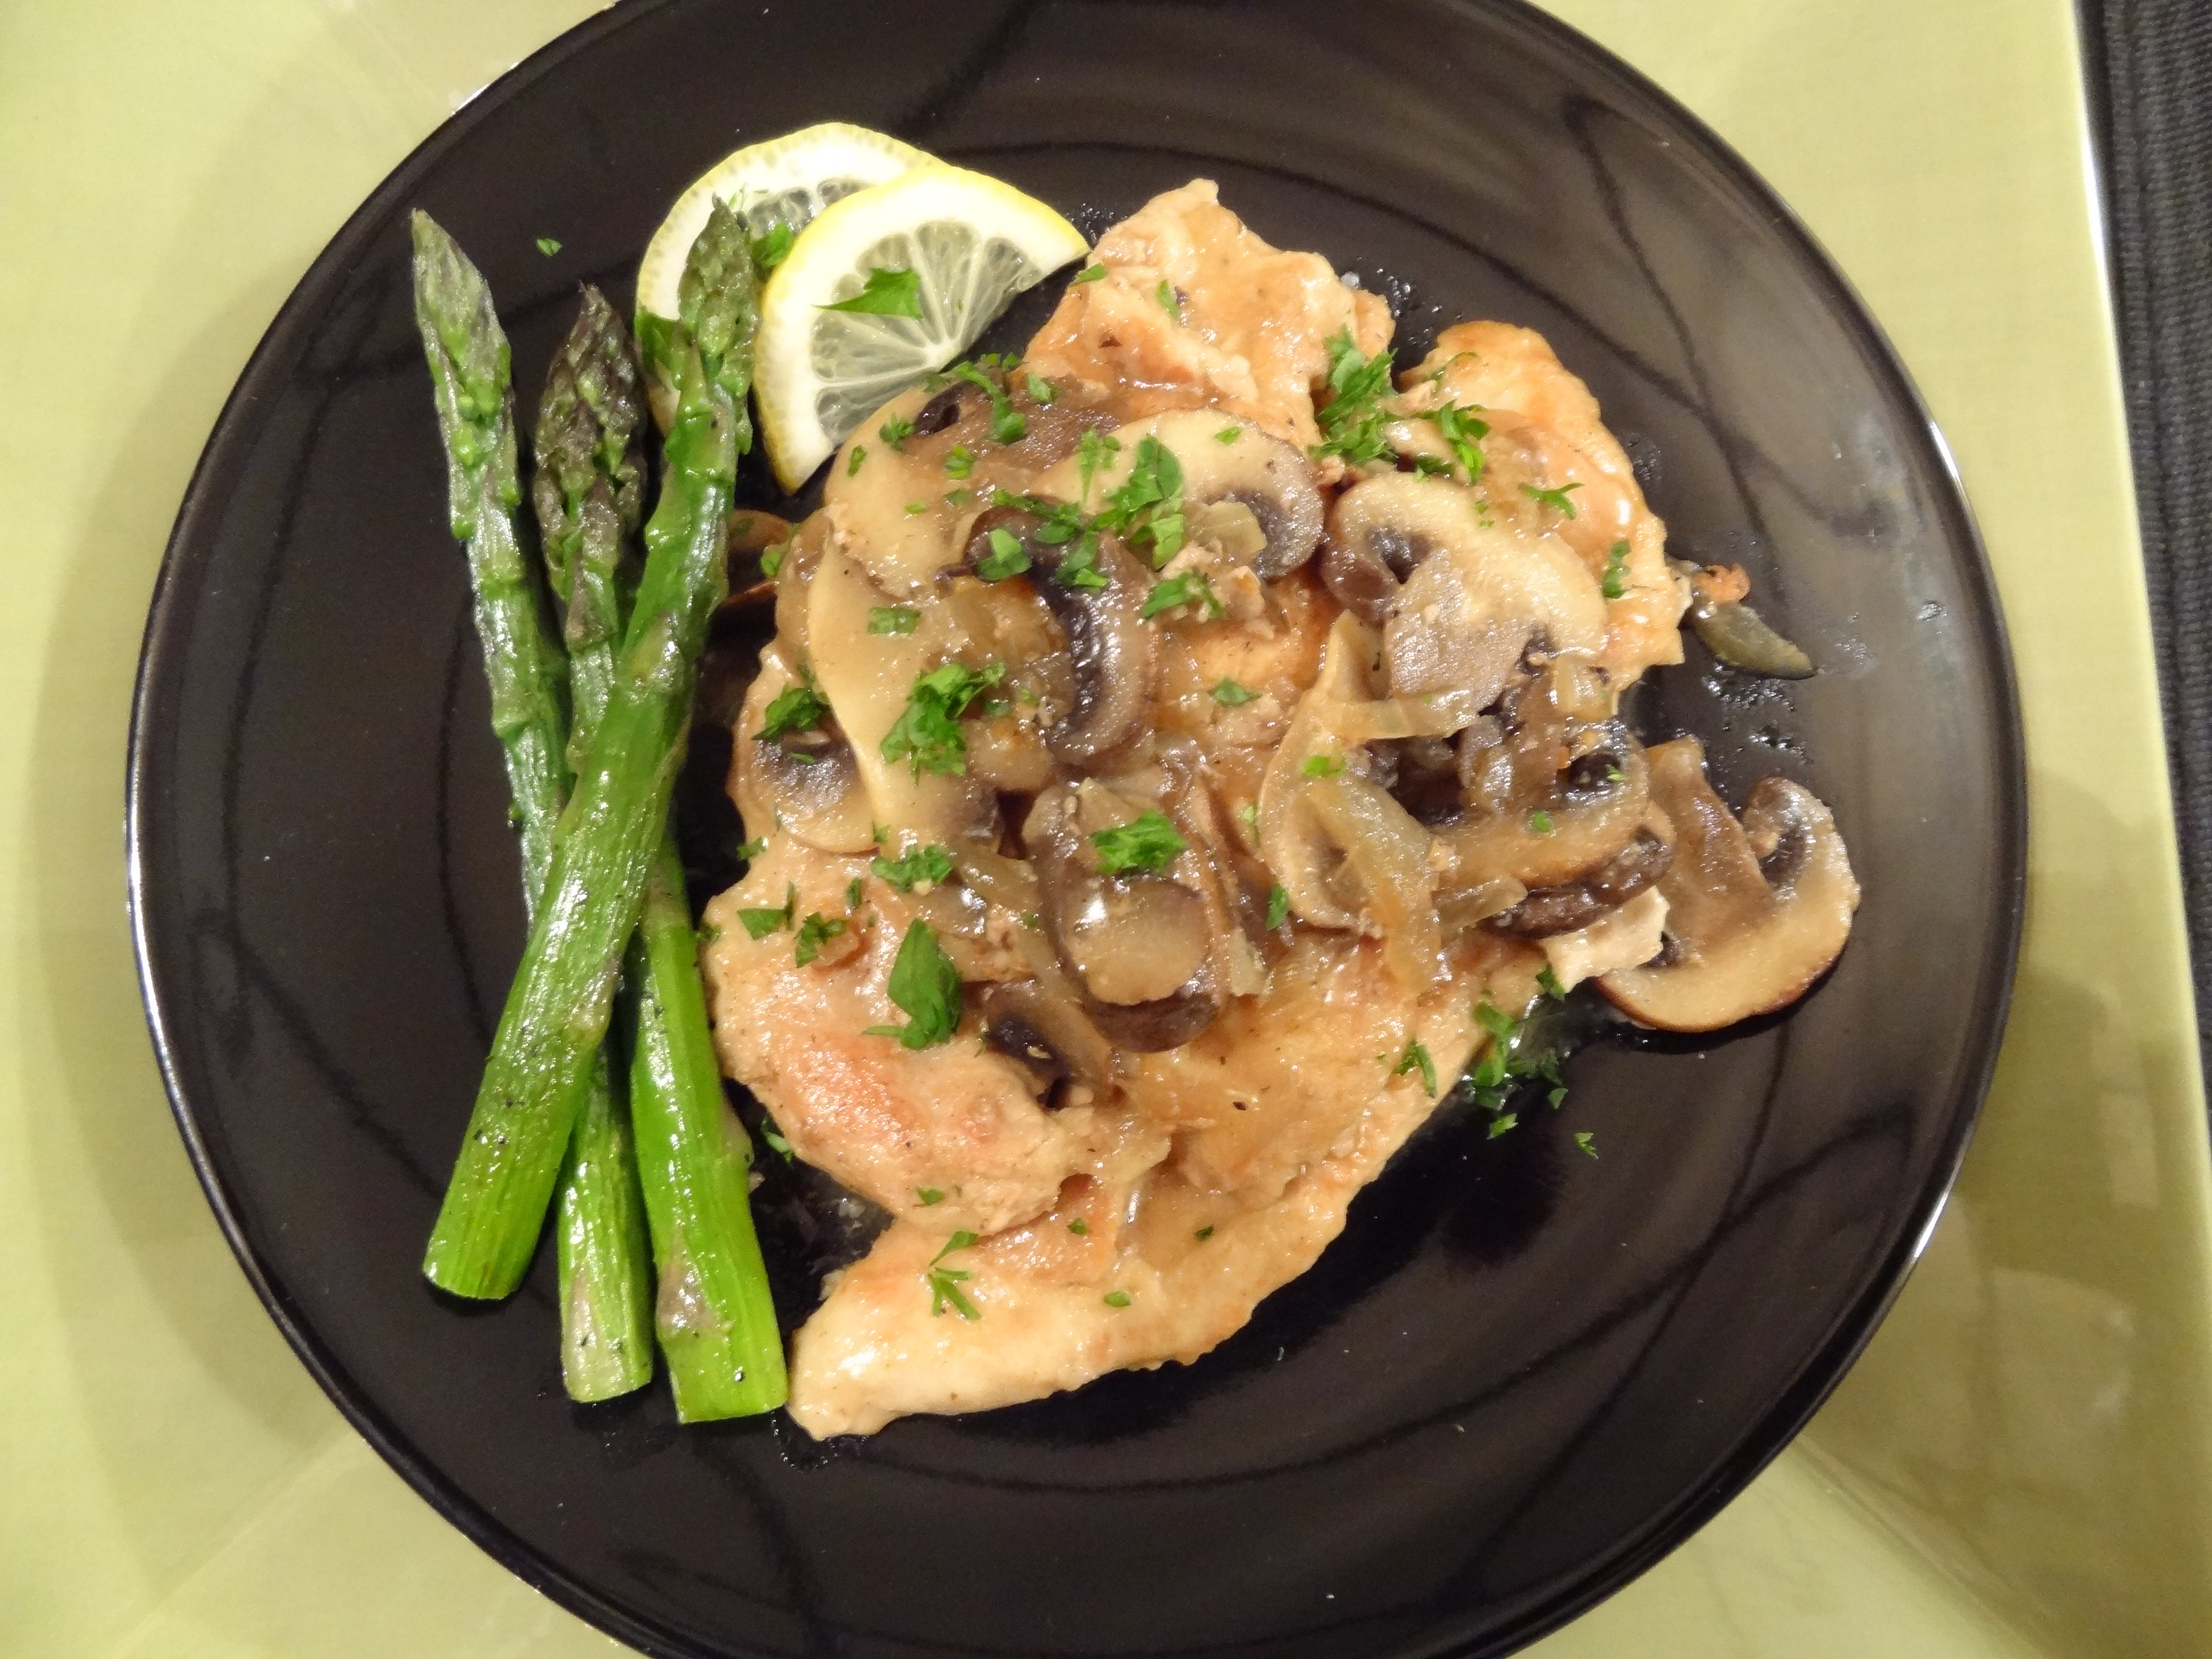 ... Inc Personal Chef Cooking Lessons | Chicken Marsala with Asparagus